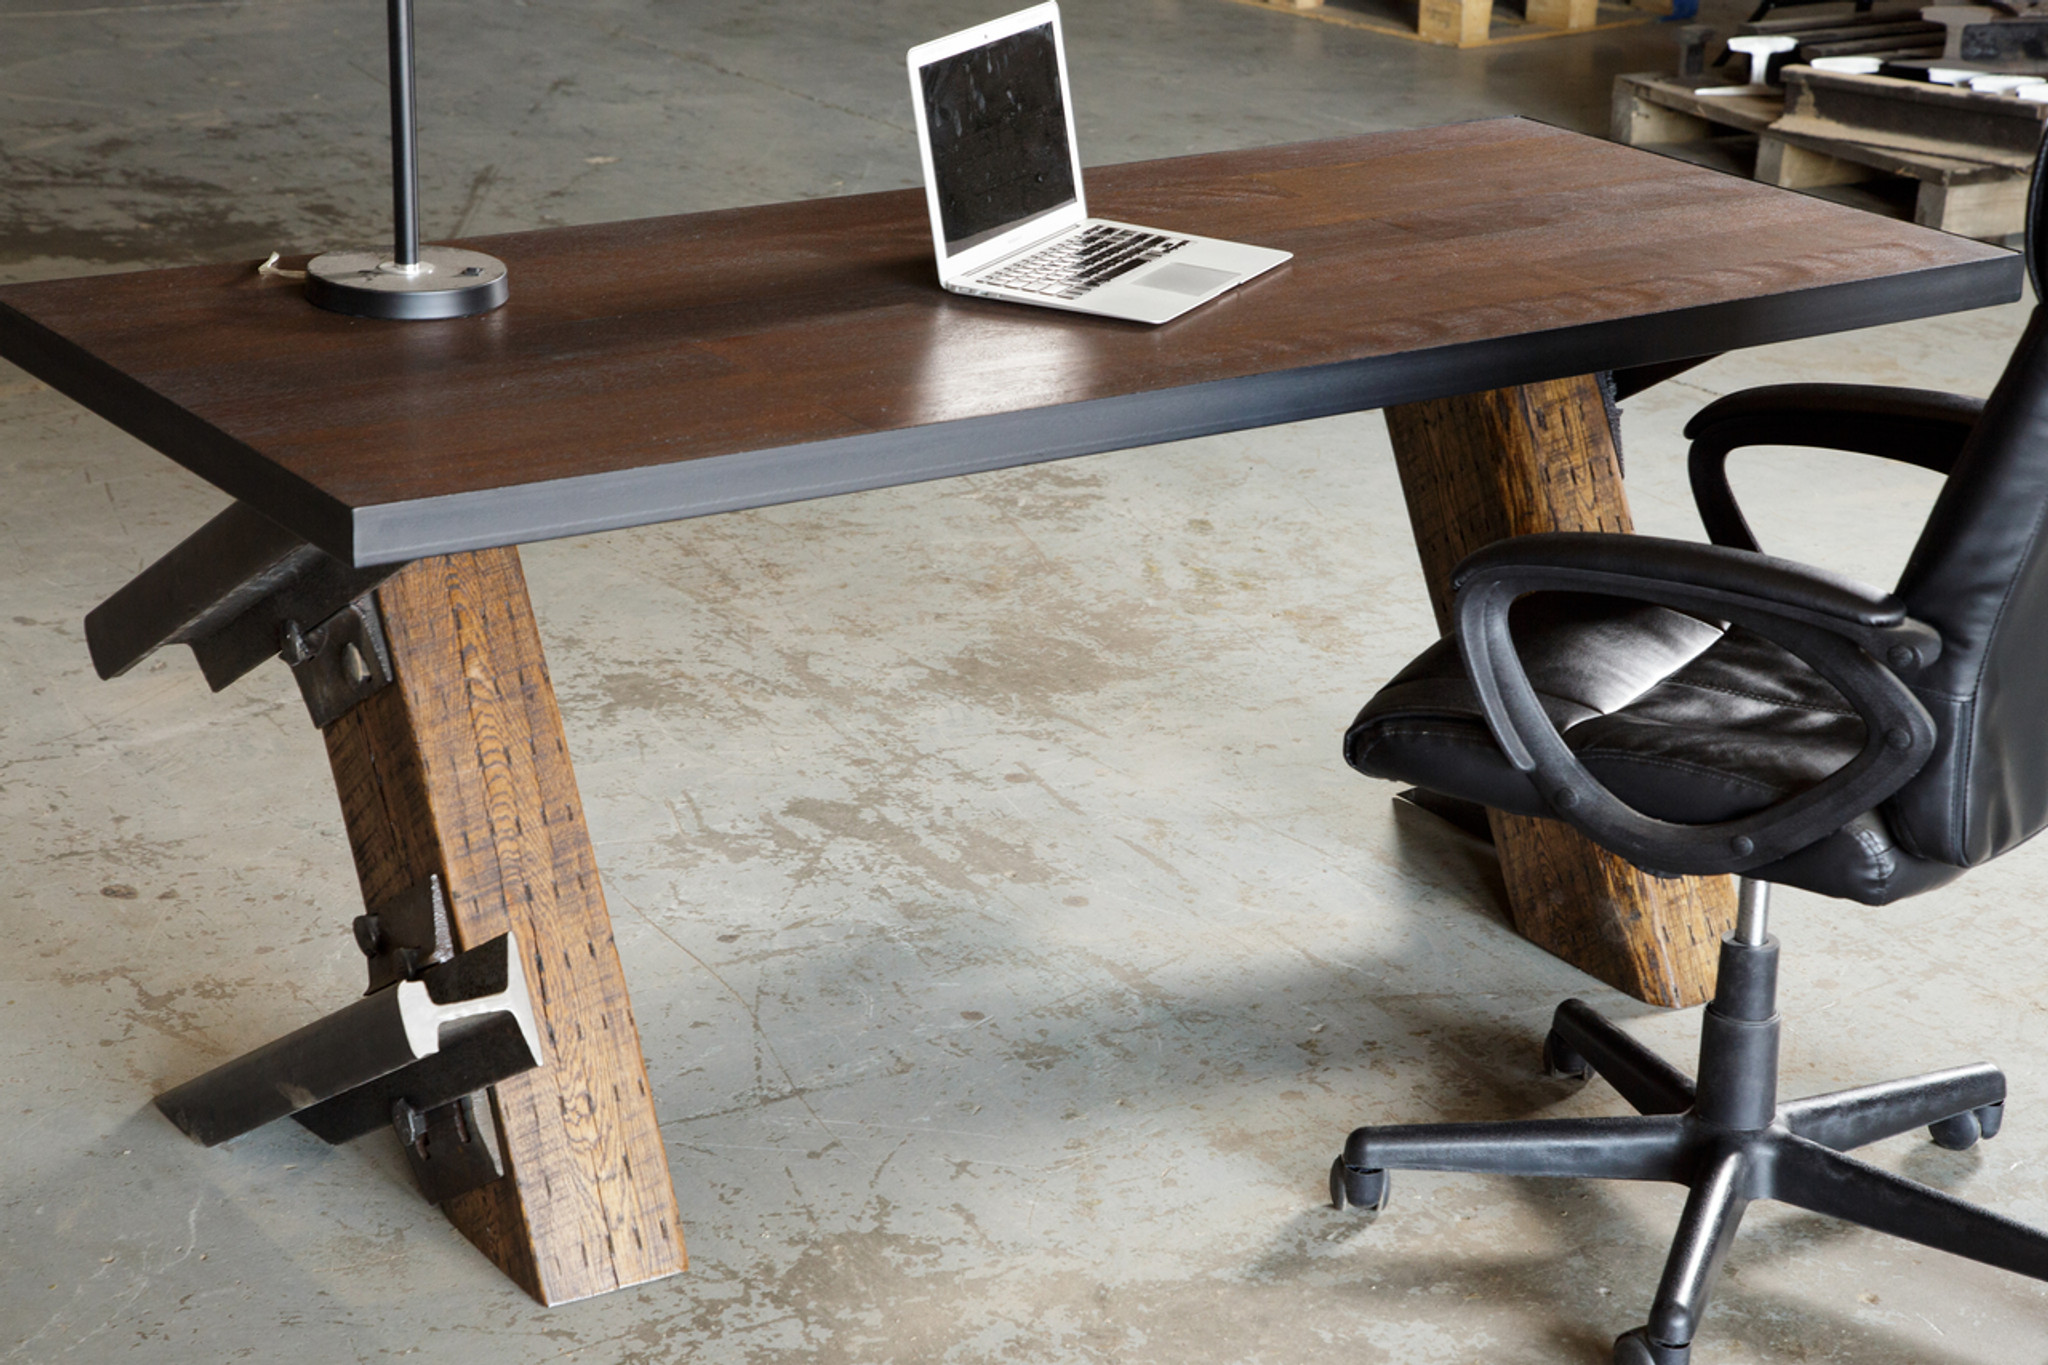 apple laptop macbook pro on industrial age style desk with cantilever legs and office chair